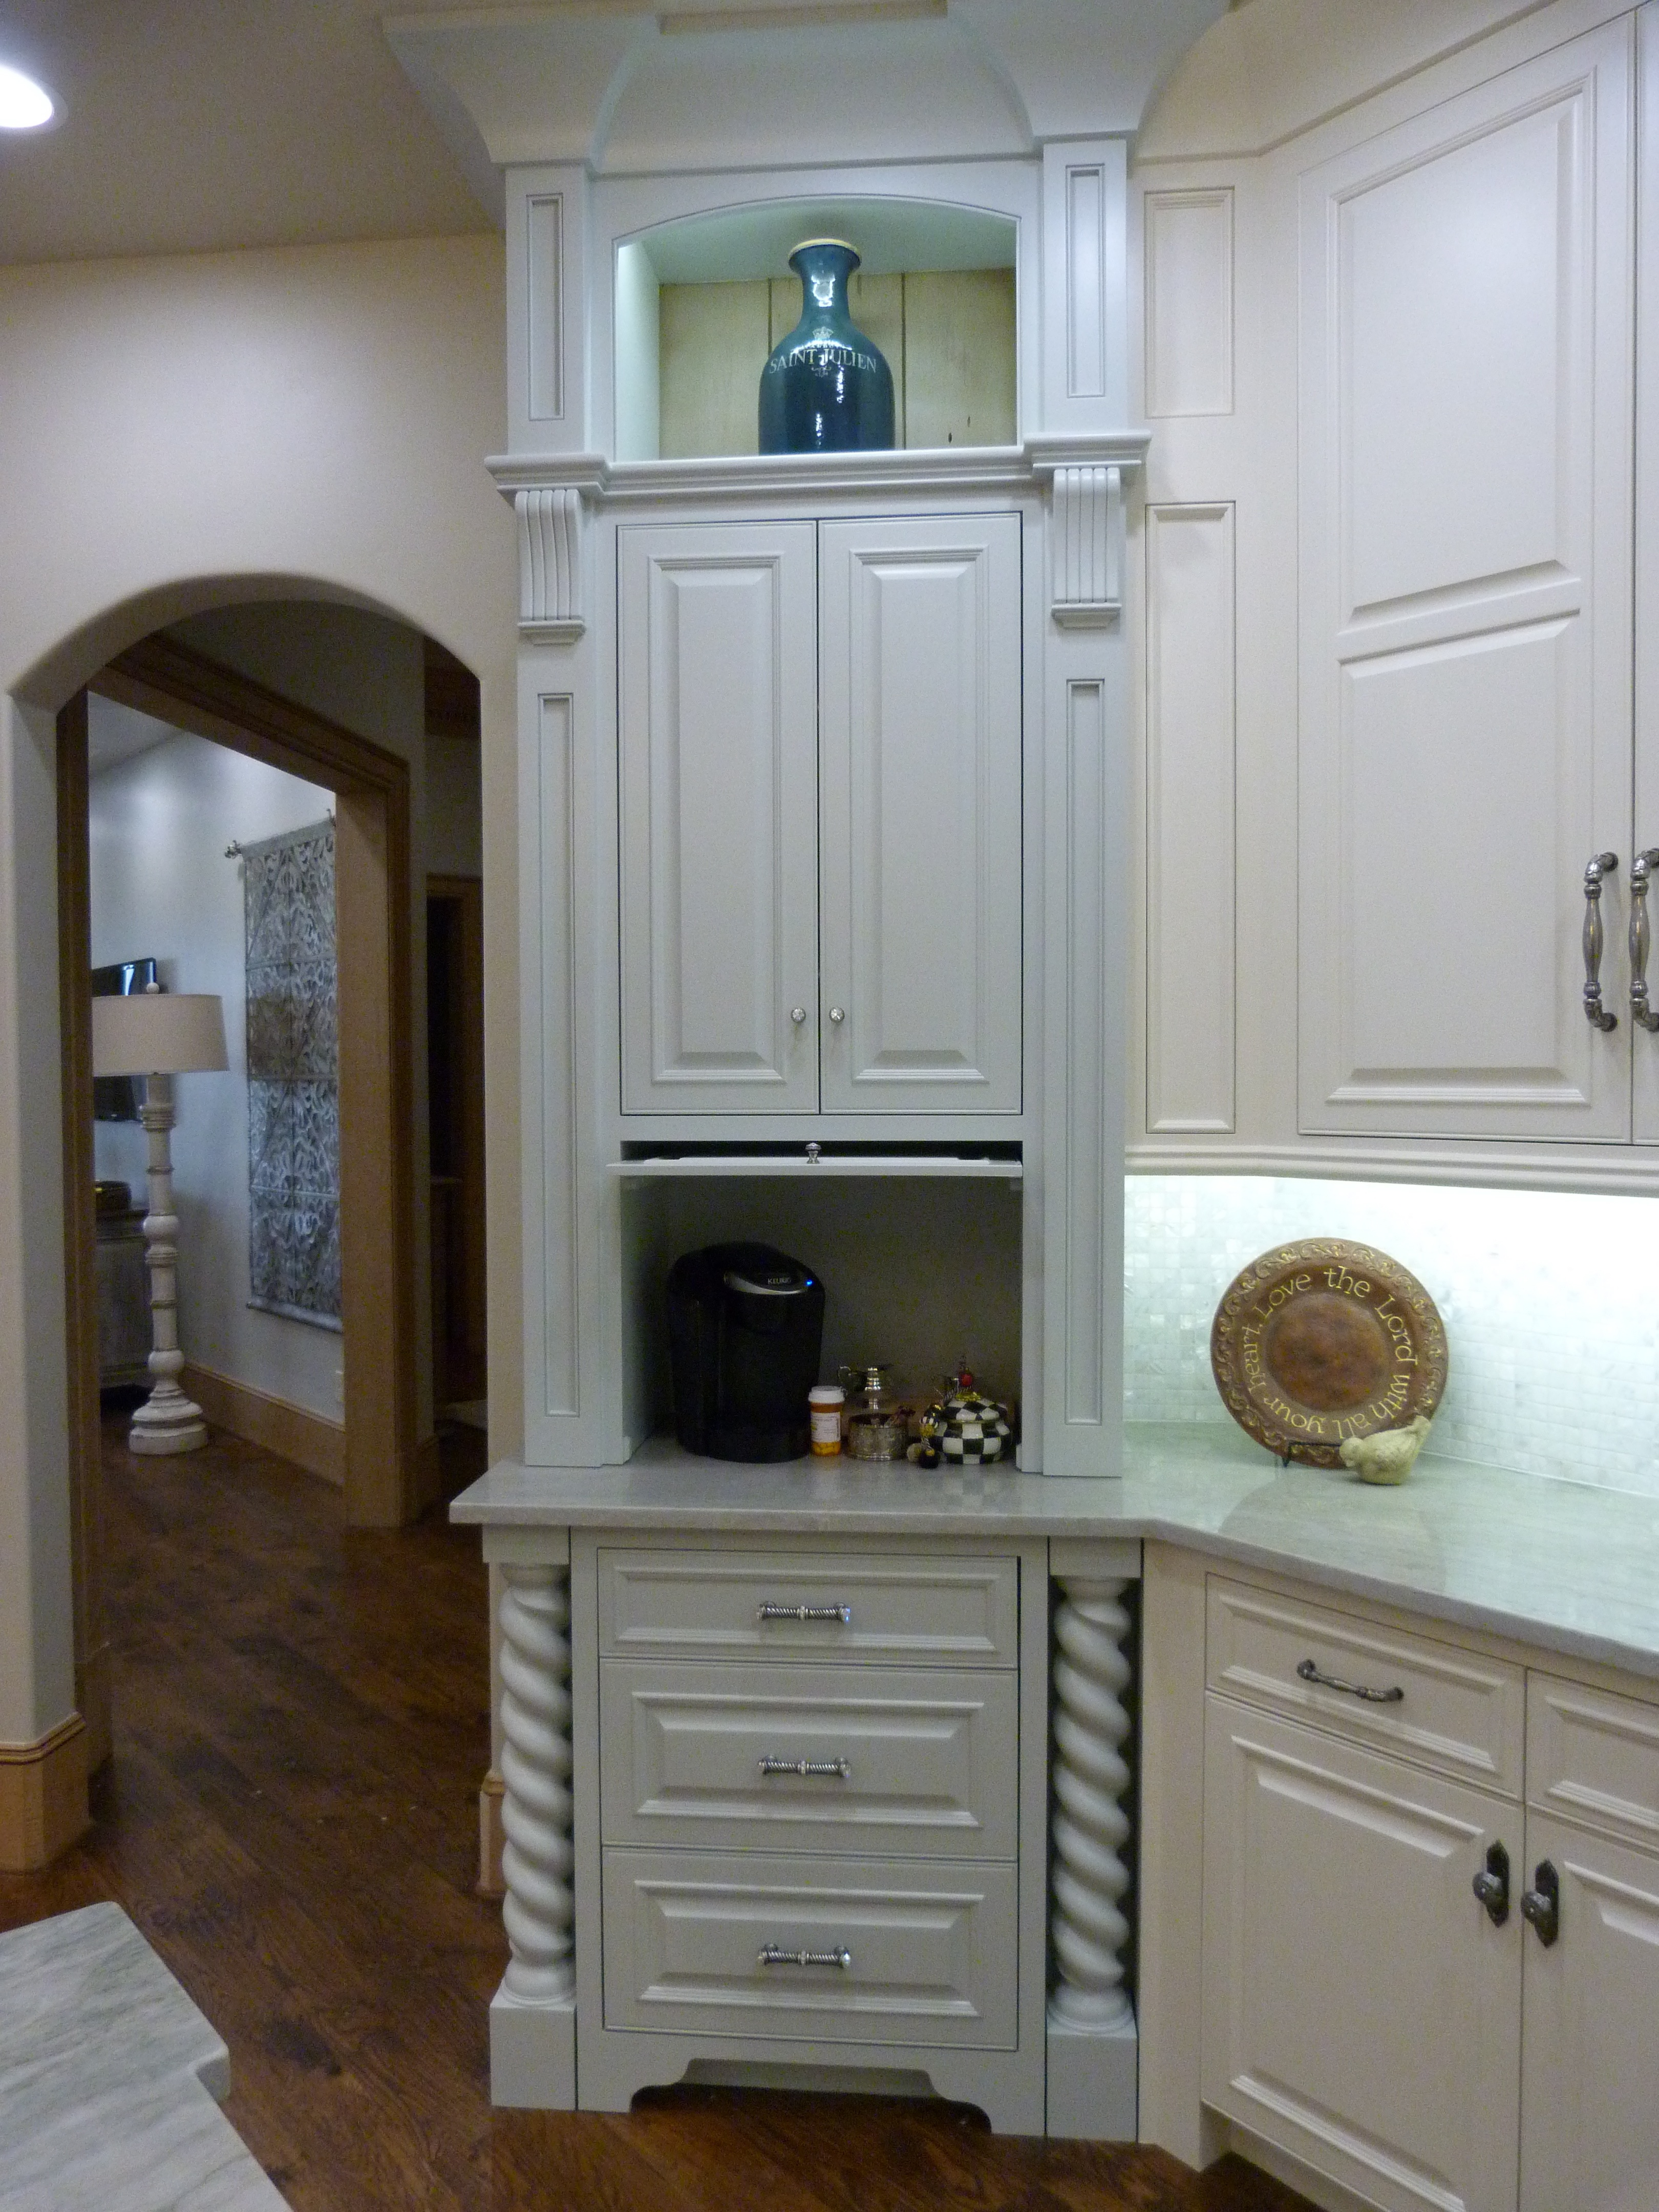 home remodeling oklahoma city kitchen remodel okc White kitchen cabinets that go to the ceiling from Majestic Construction kitchen remodel